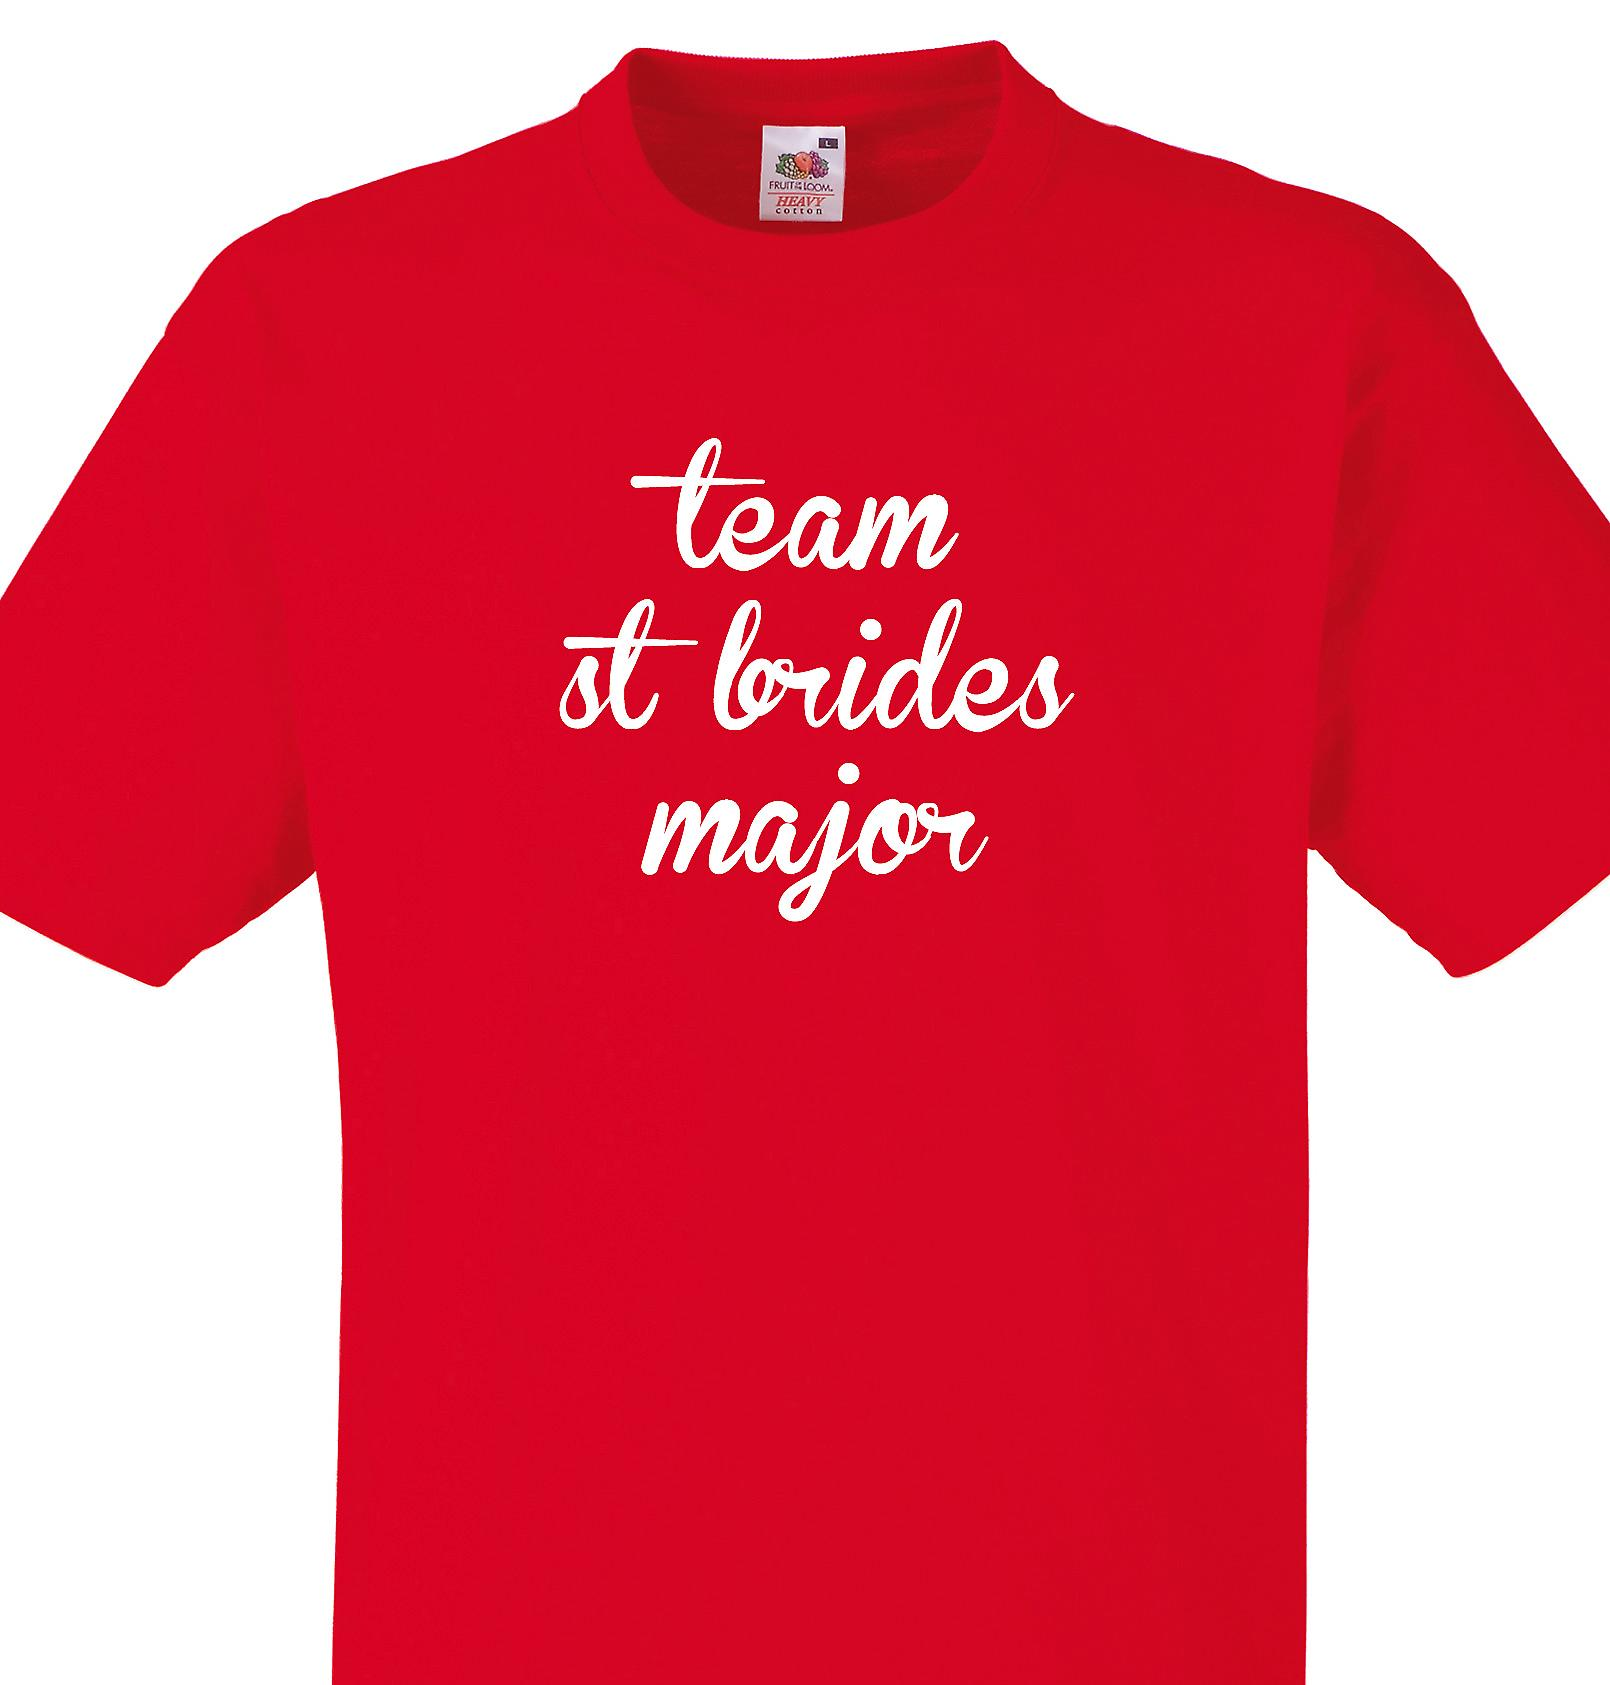 Team St brides major Red T shirt